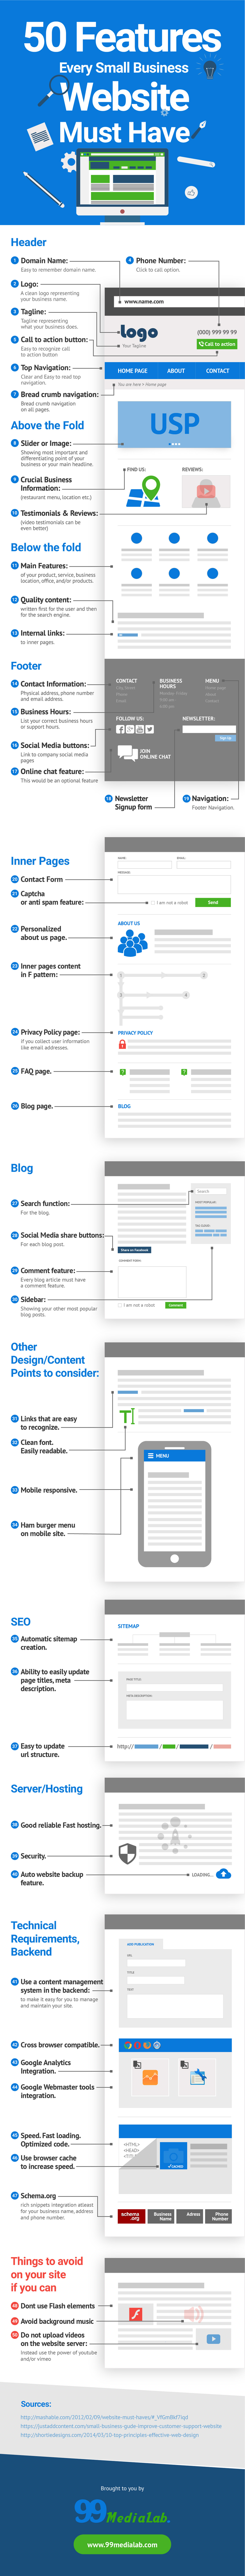 50 Must Have Features For Your Business Website